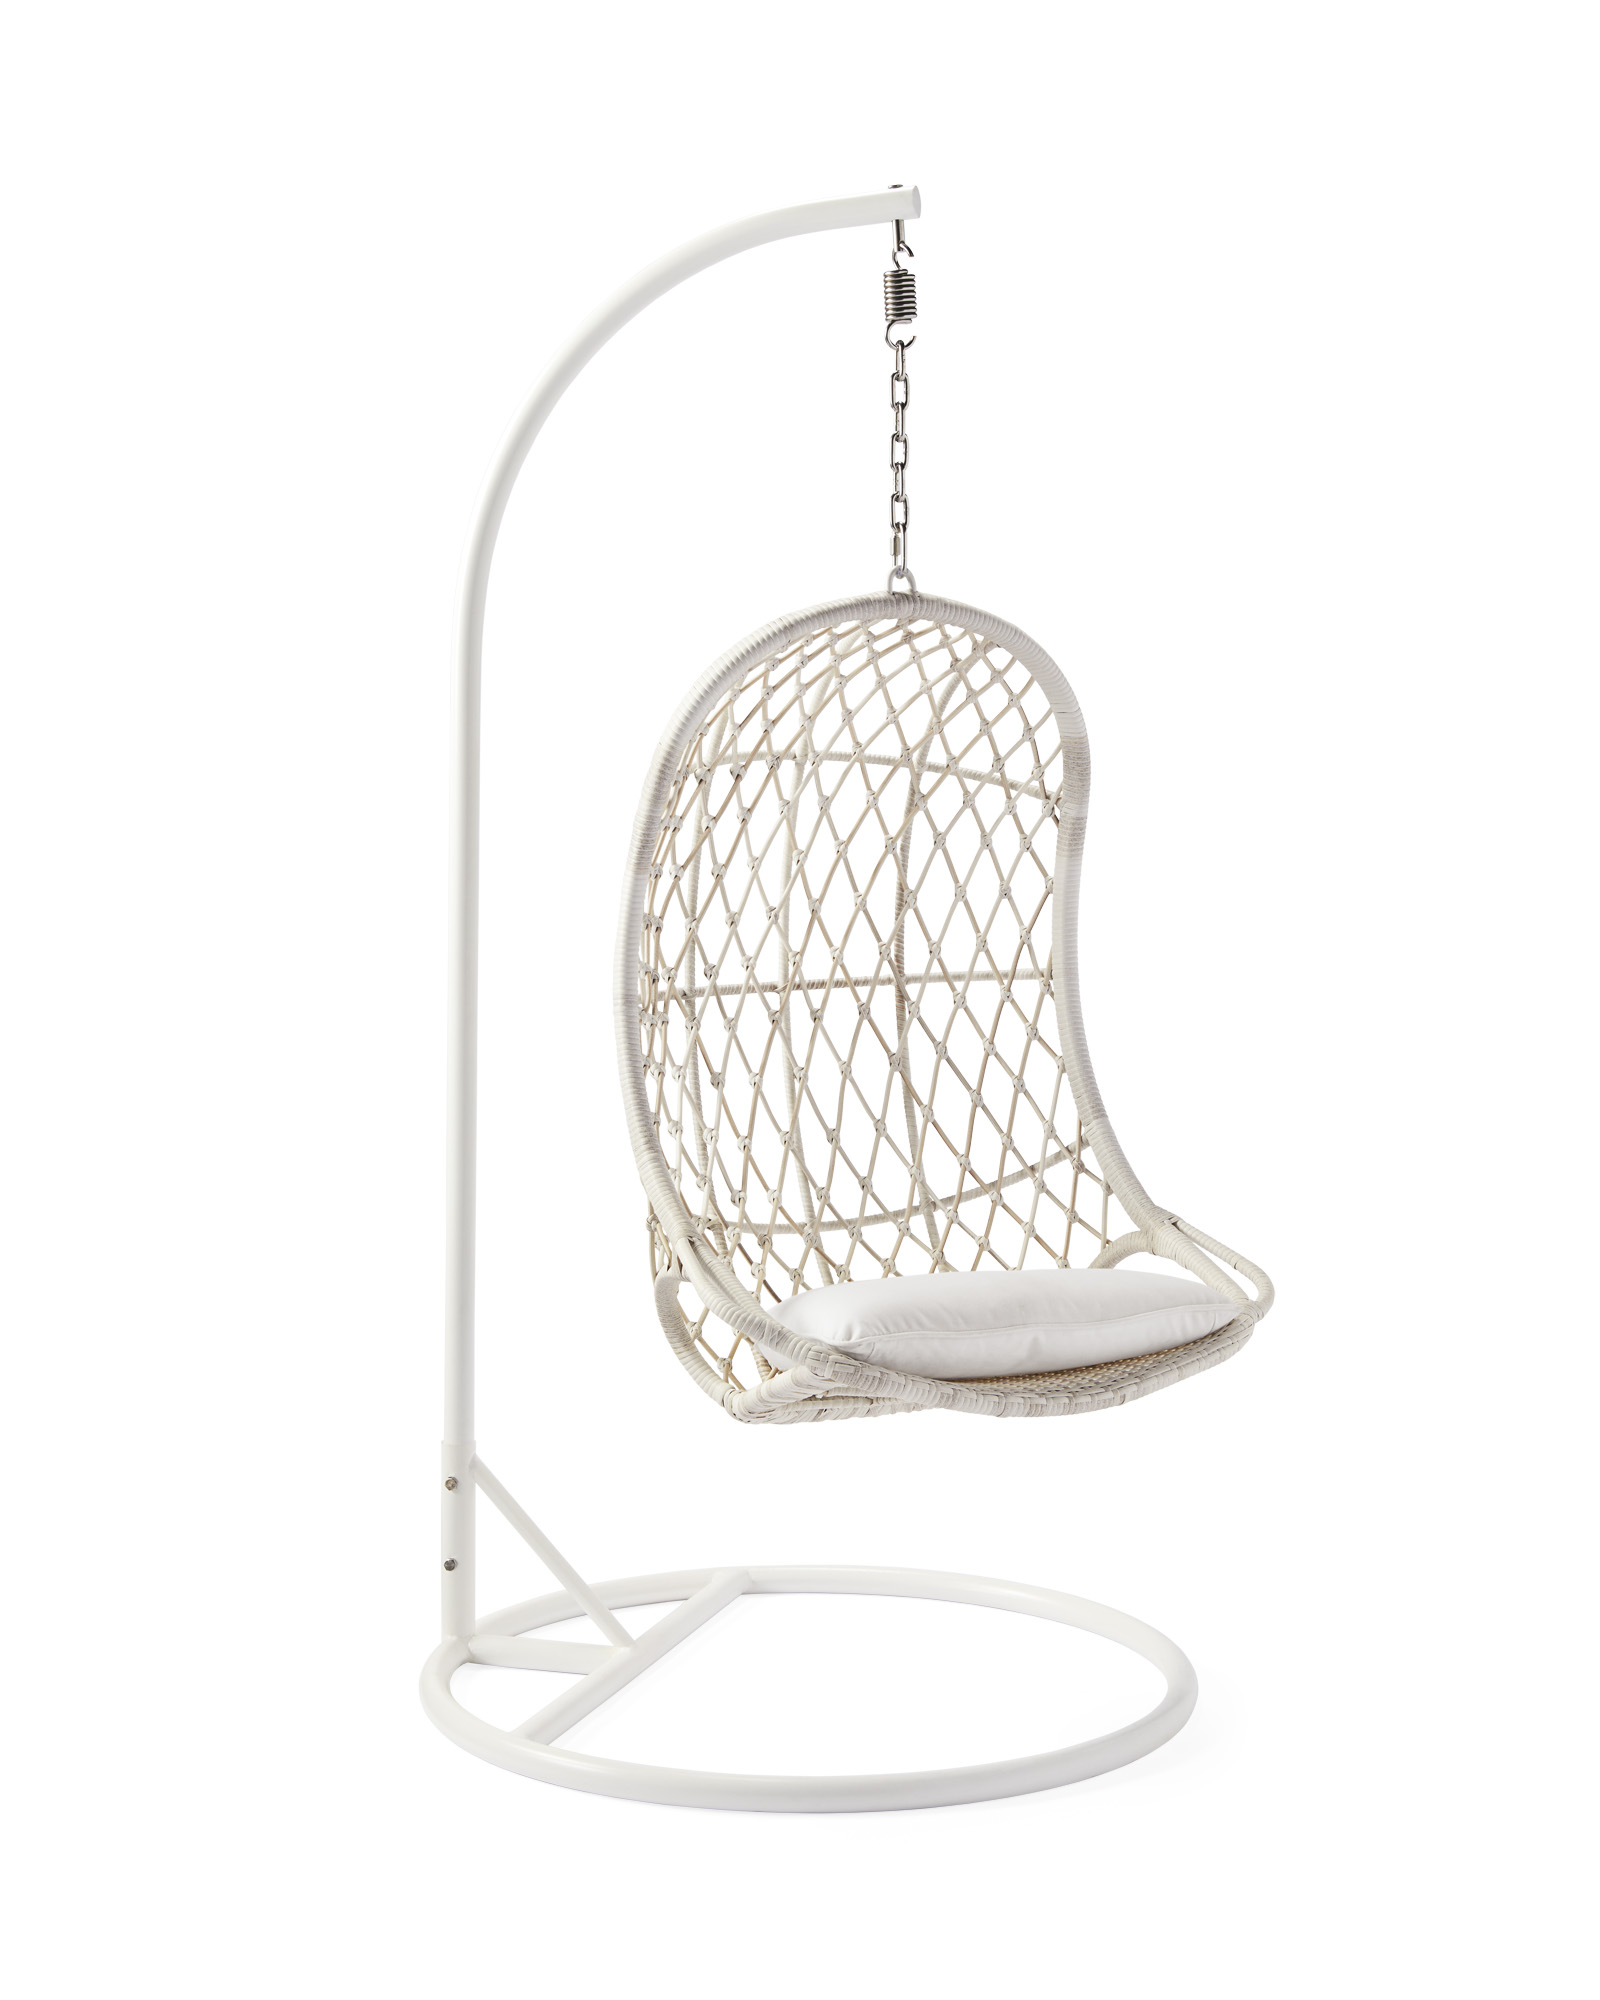 Capistrano Outdoor Hanging Chair & Stand, Driftwood